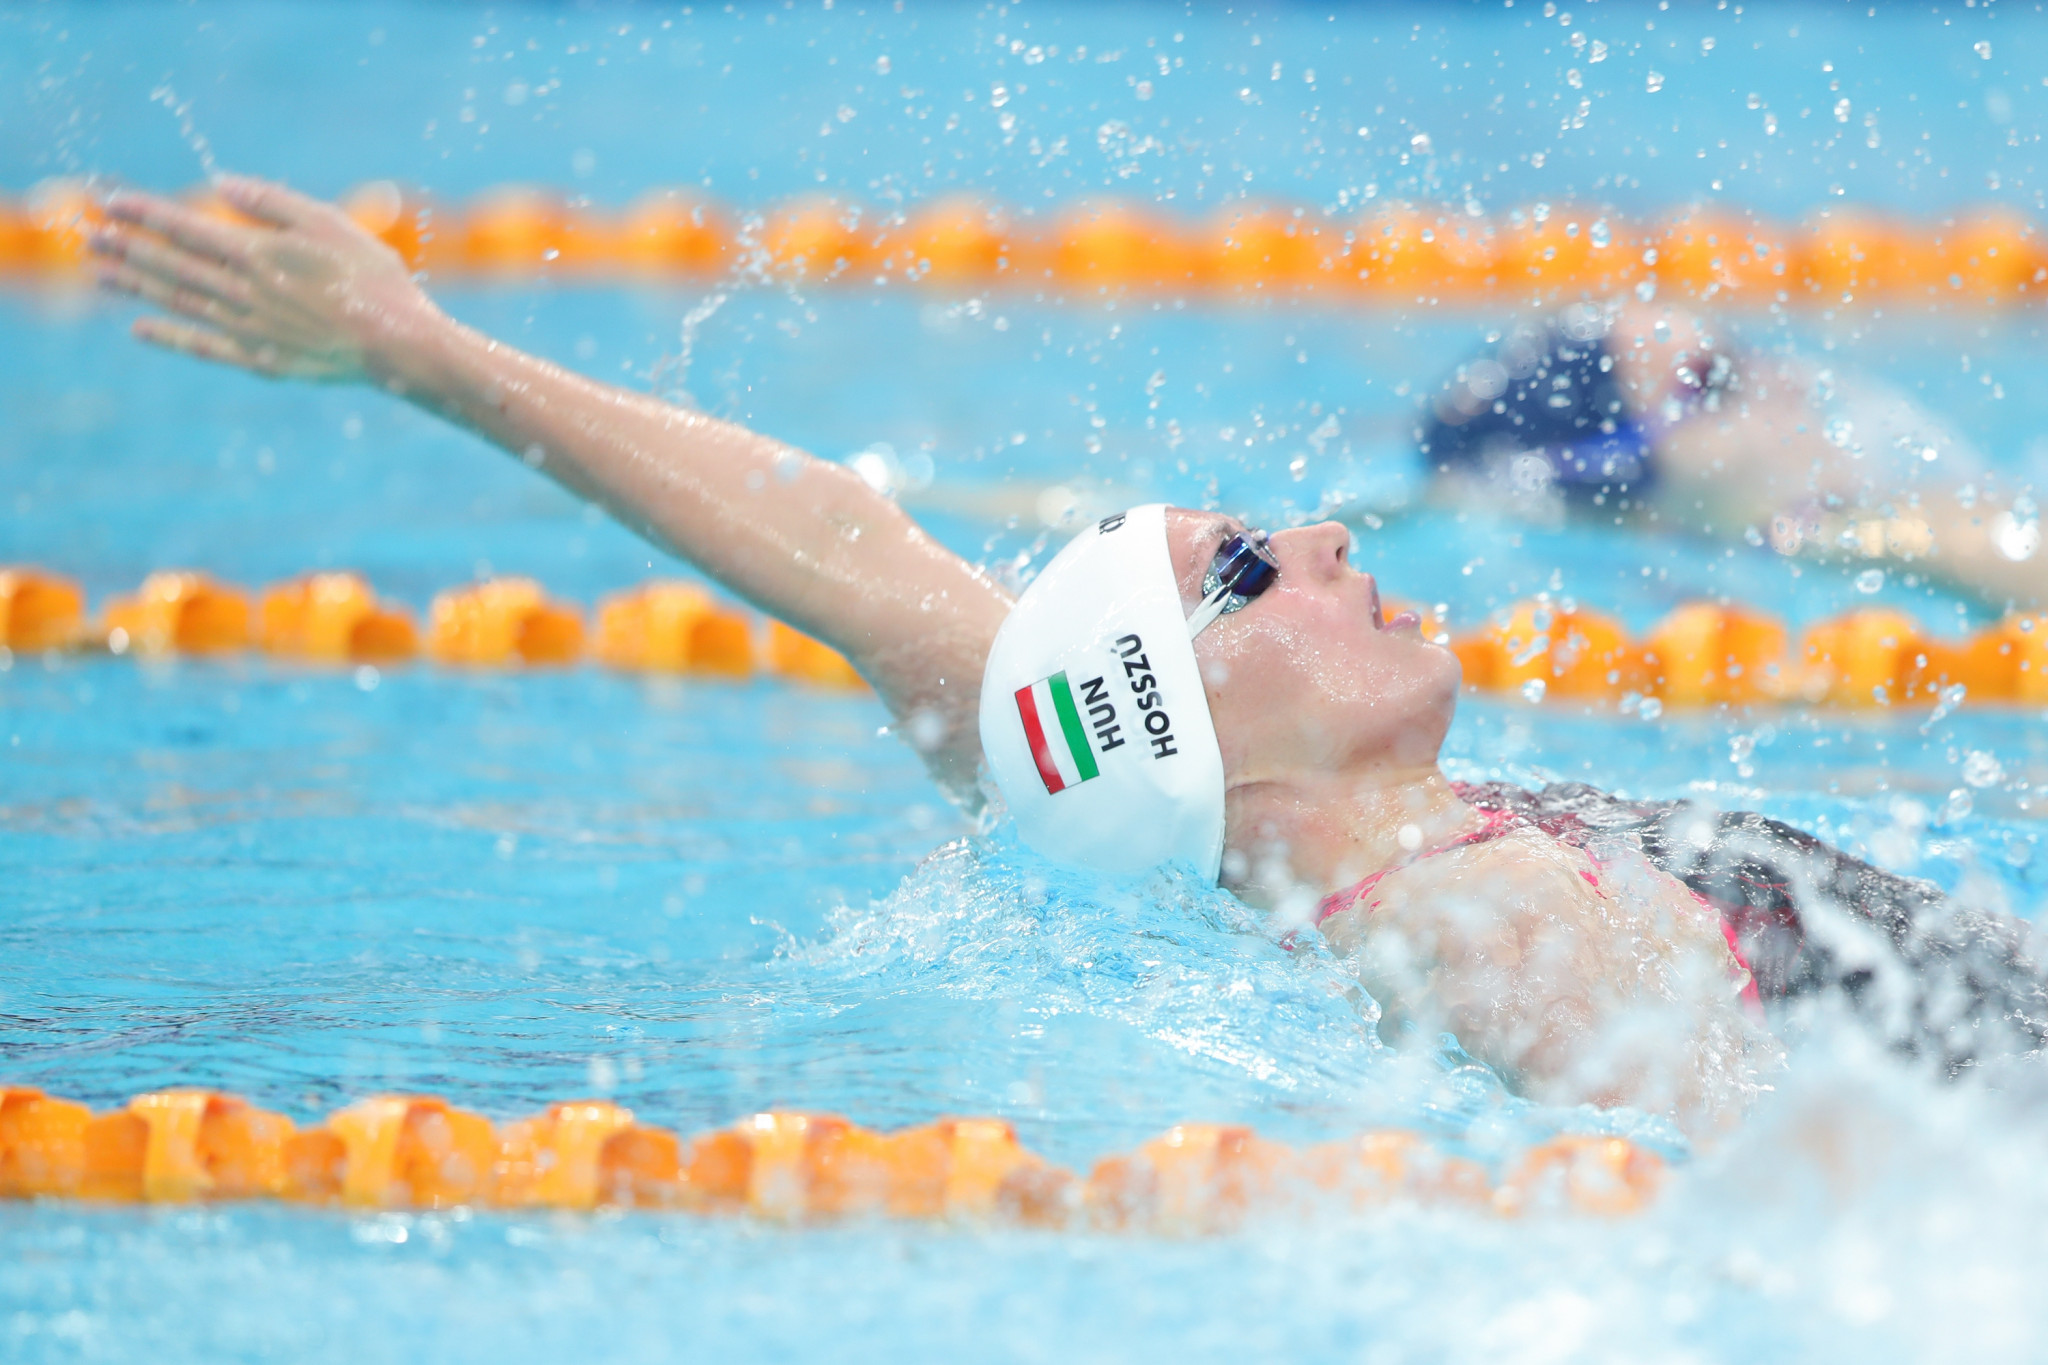 Hungary's Katinka Hosszu is among the sport's leading names expected to compete in Turin ©Getty Images